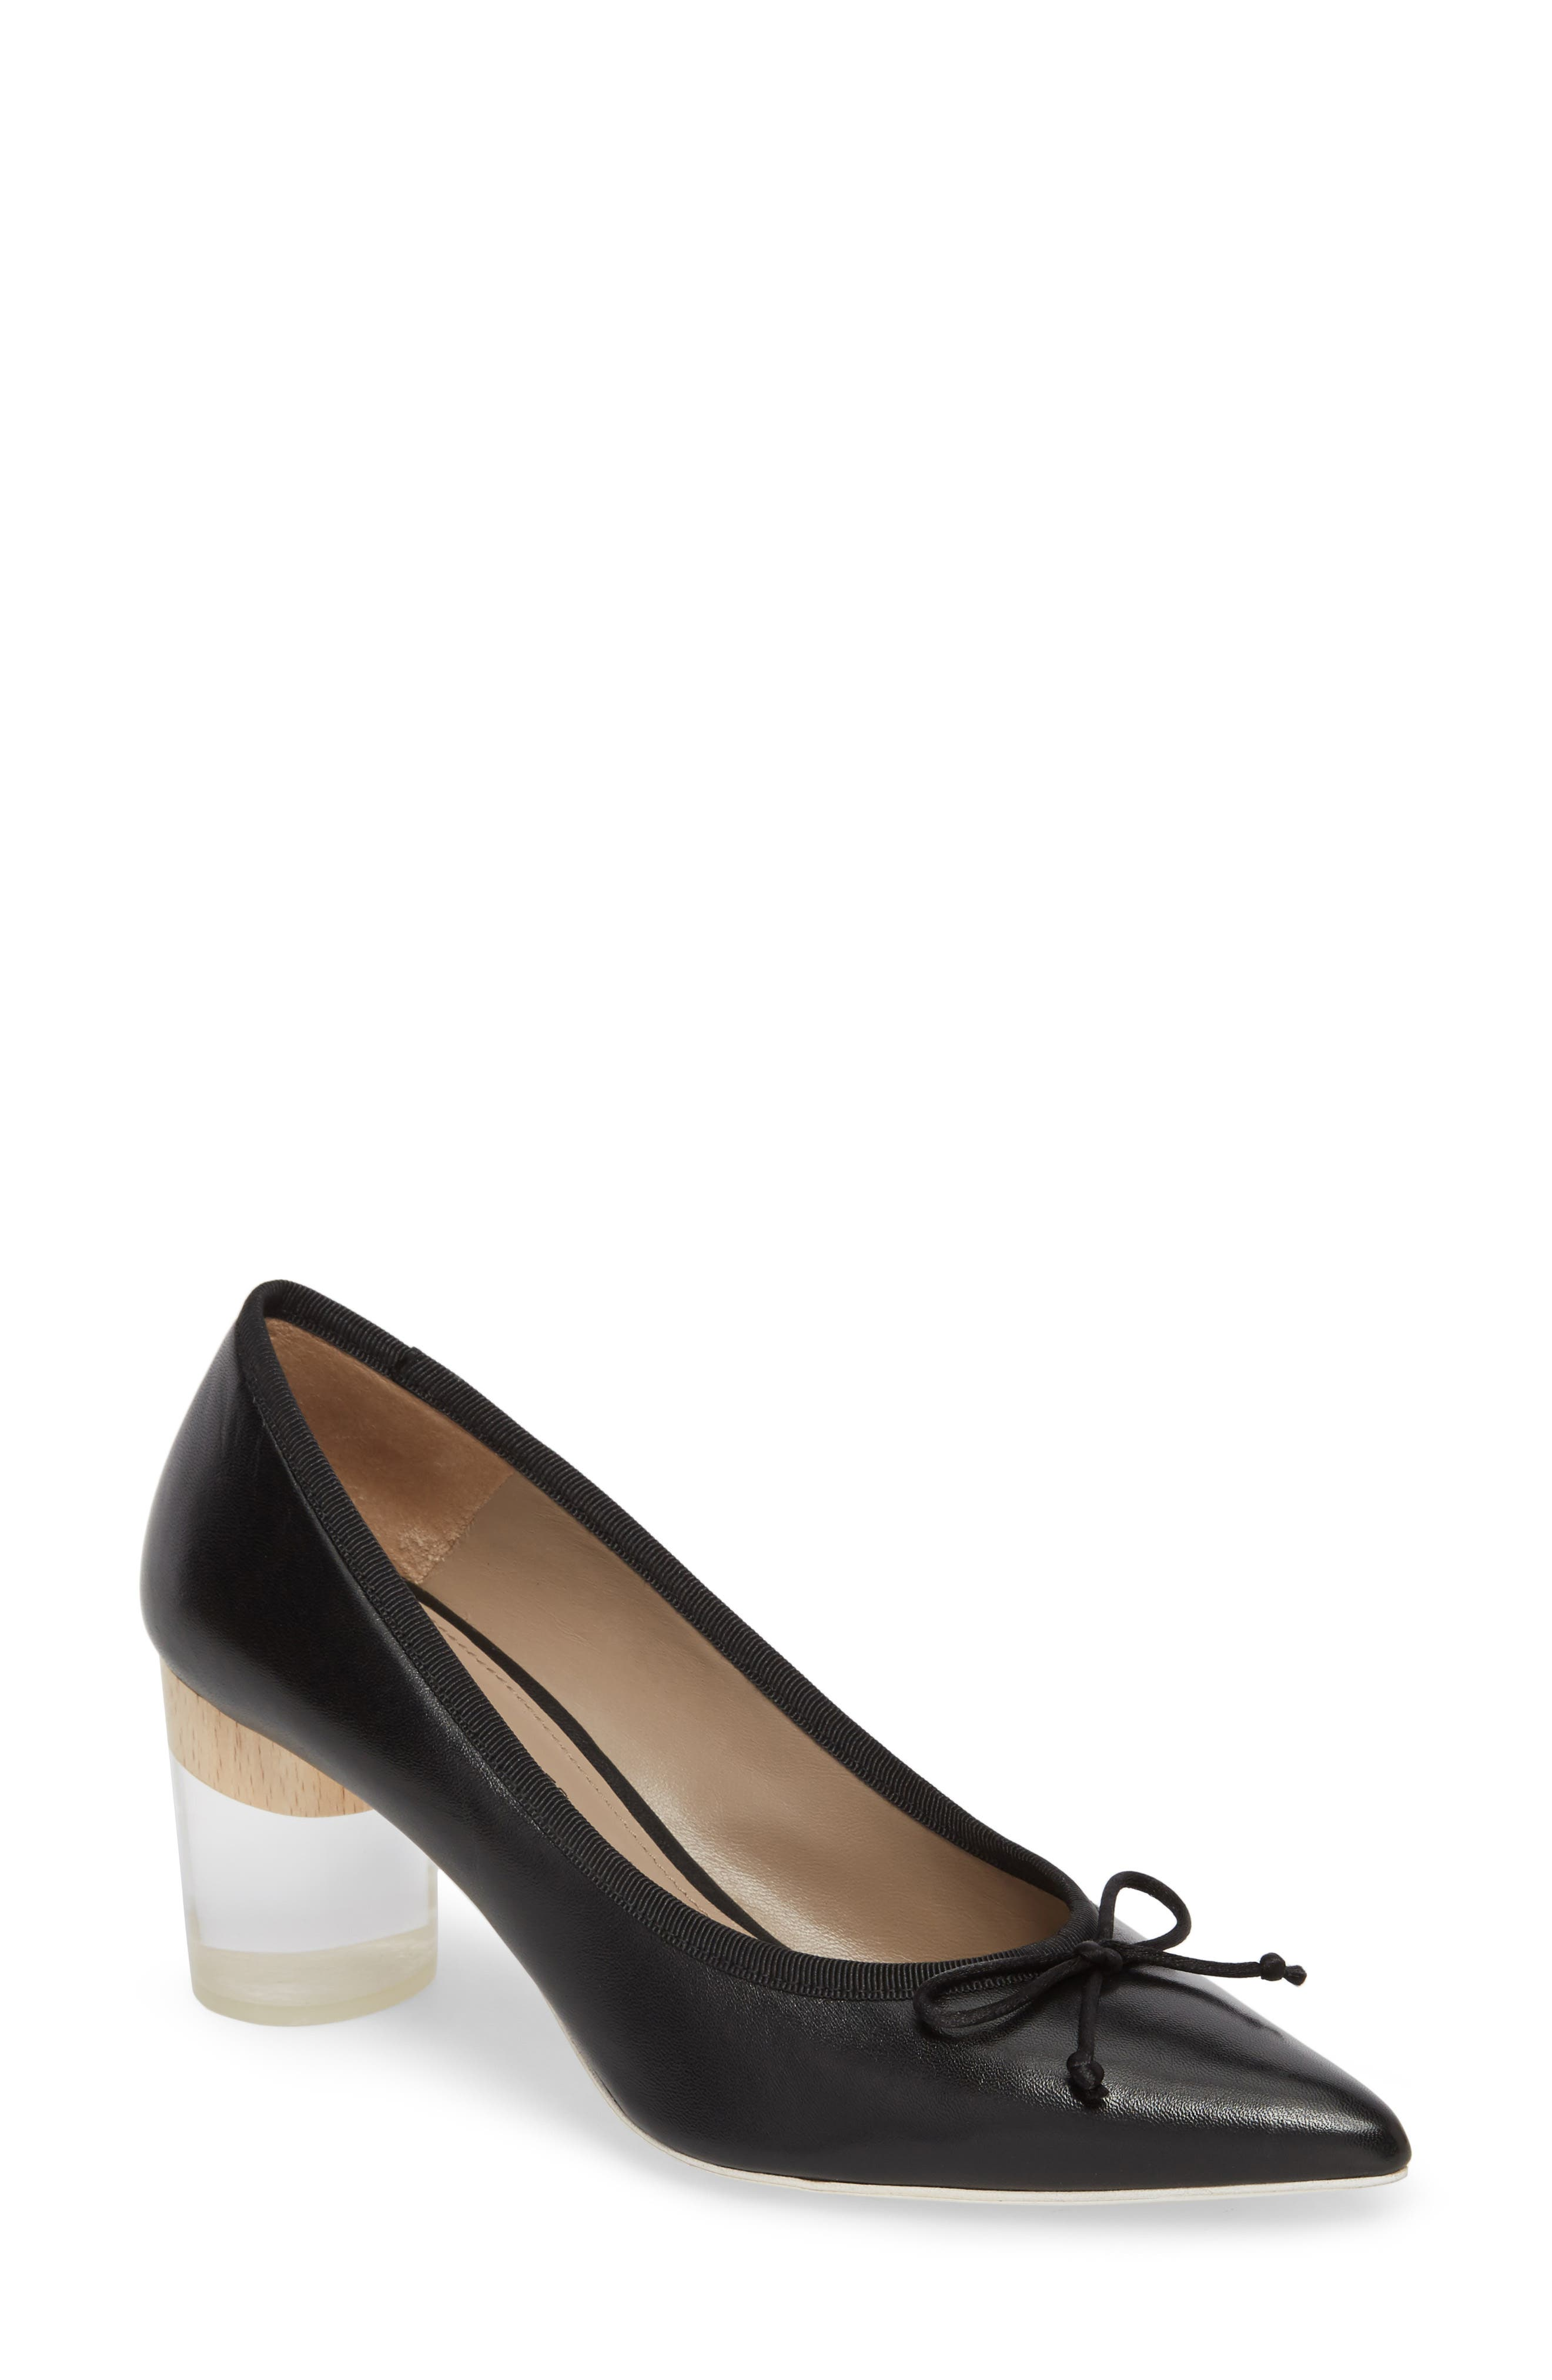 Alternate Image 1 Selected - Donald Pliner Asia Pointy Toe Pump (Women)